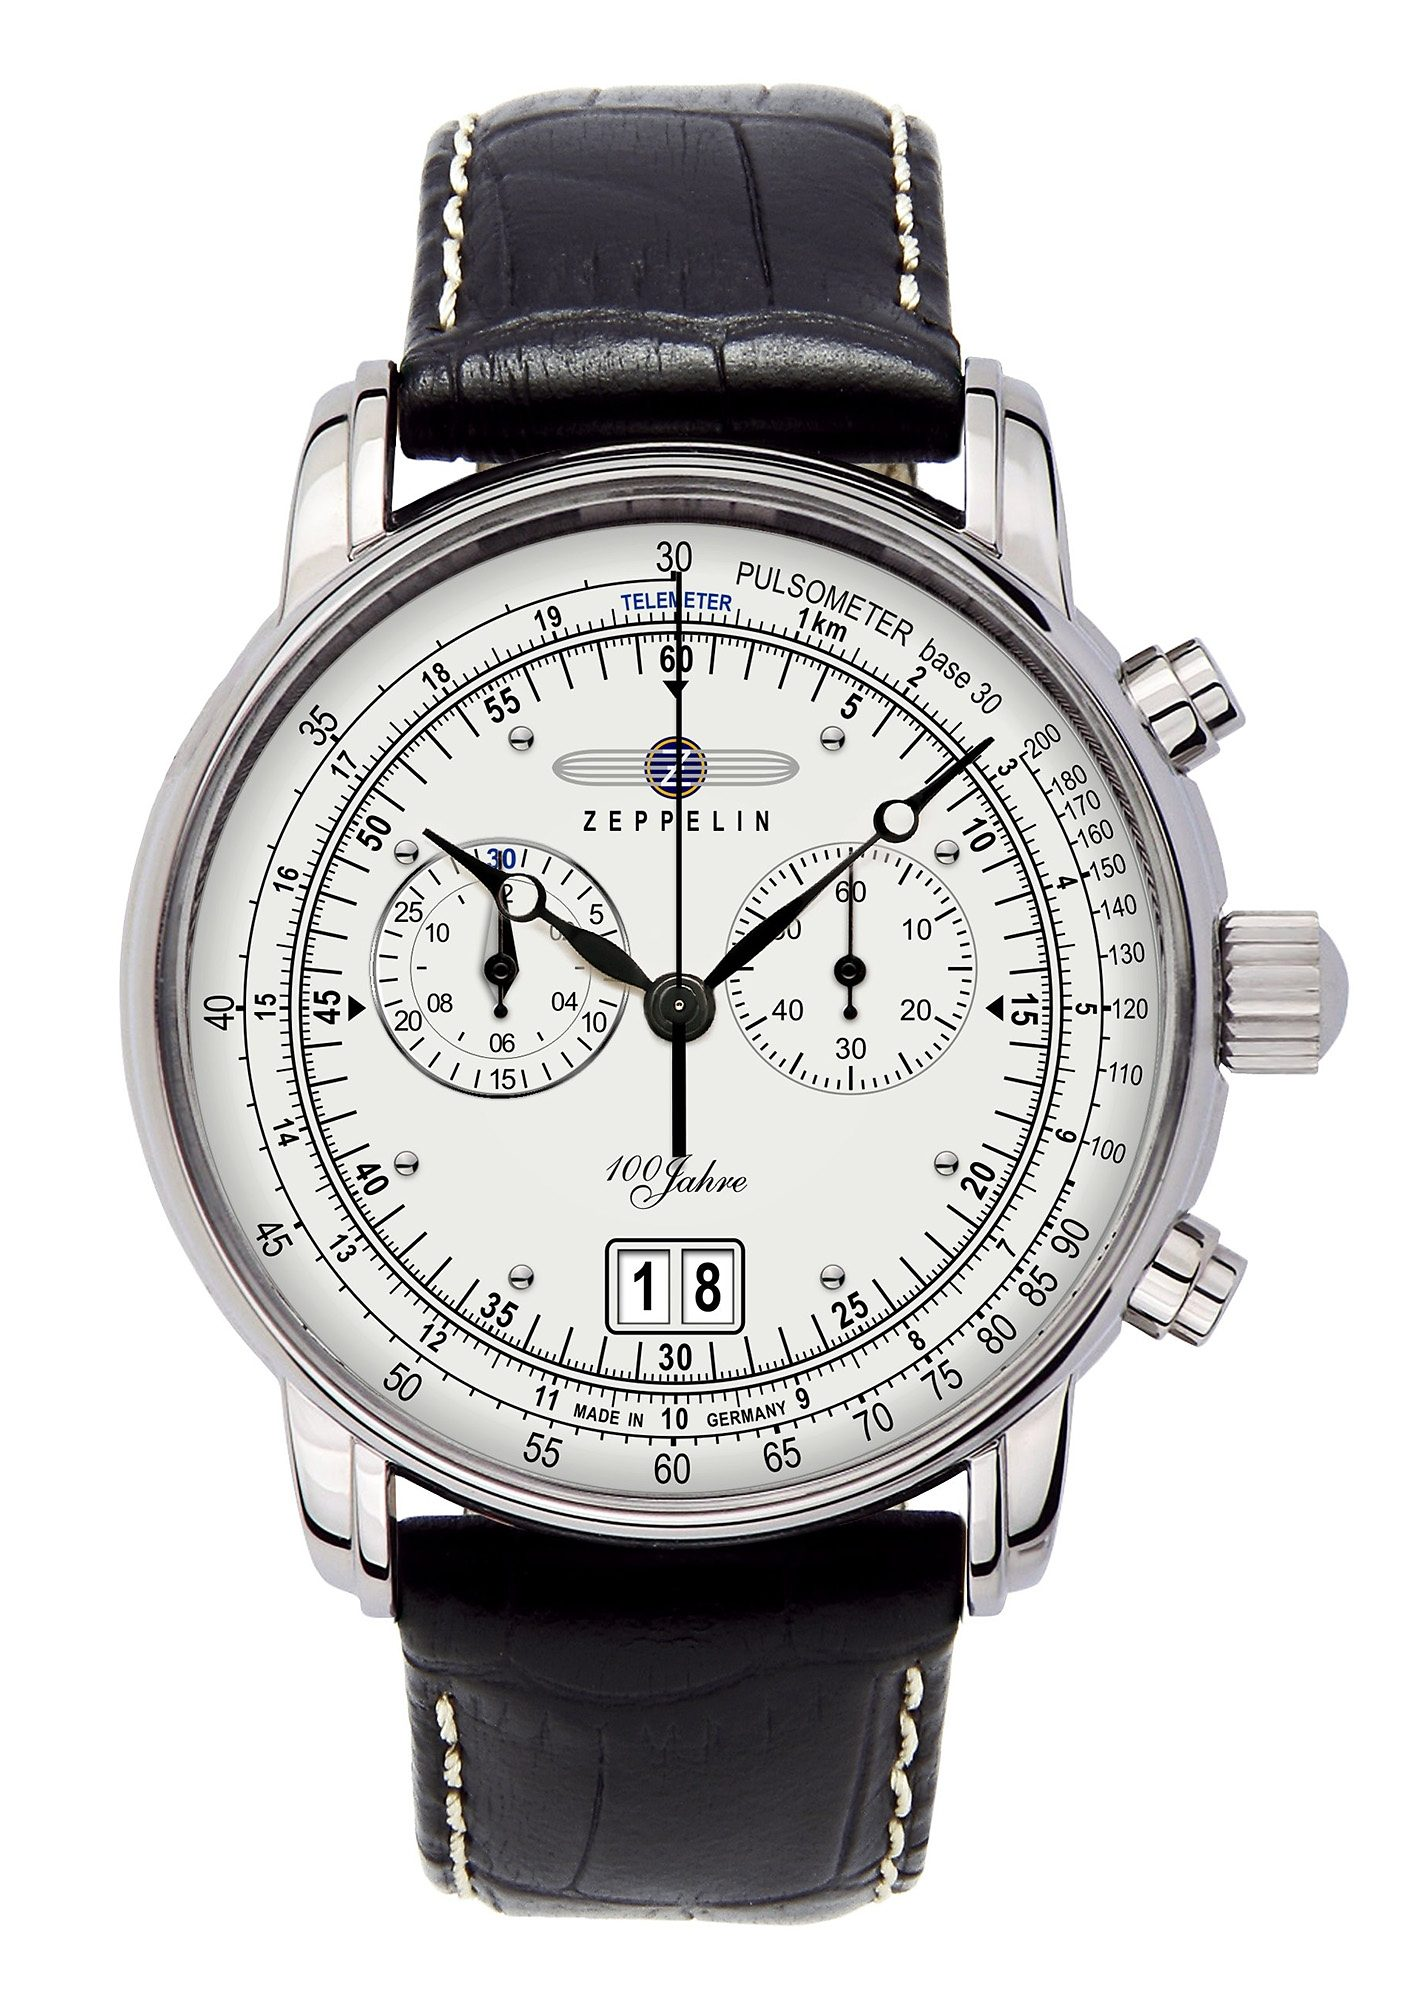 ZEPPELIN Chronograph »100 Jahre Zeppelin, 7690-1« Made in Germany